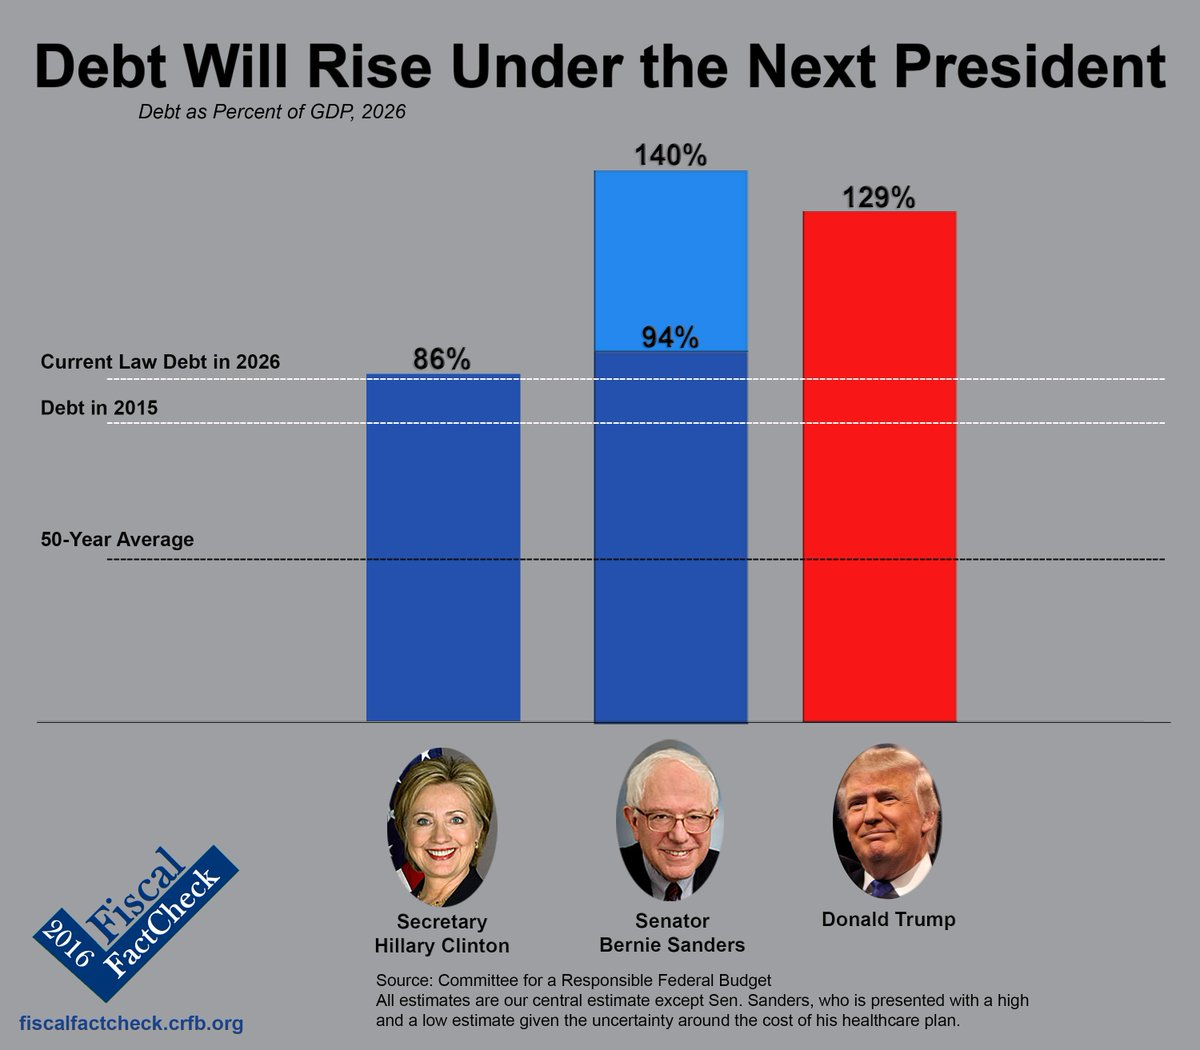 Our analysis shows that debt would rise under the plan of each presidential candidate. #2016 https://t.co/7Z5Nj02Bu6 https://t.co/RMOBD82a1H